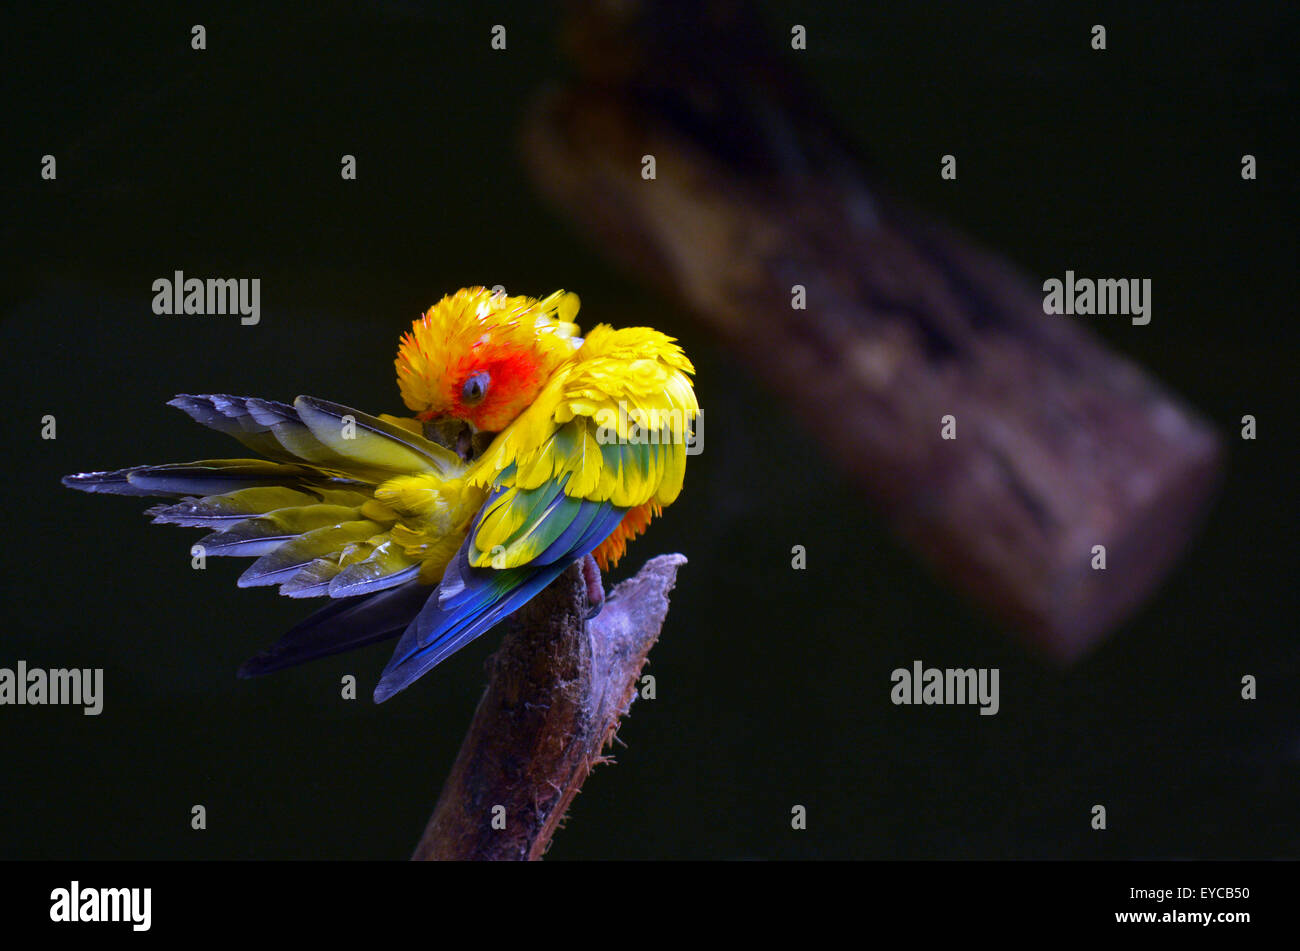 Sun parakeet or sun conure (Aratinga solstitialis) cleans up. - Stock Image